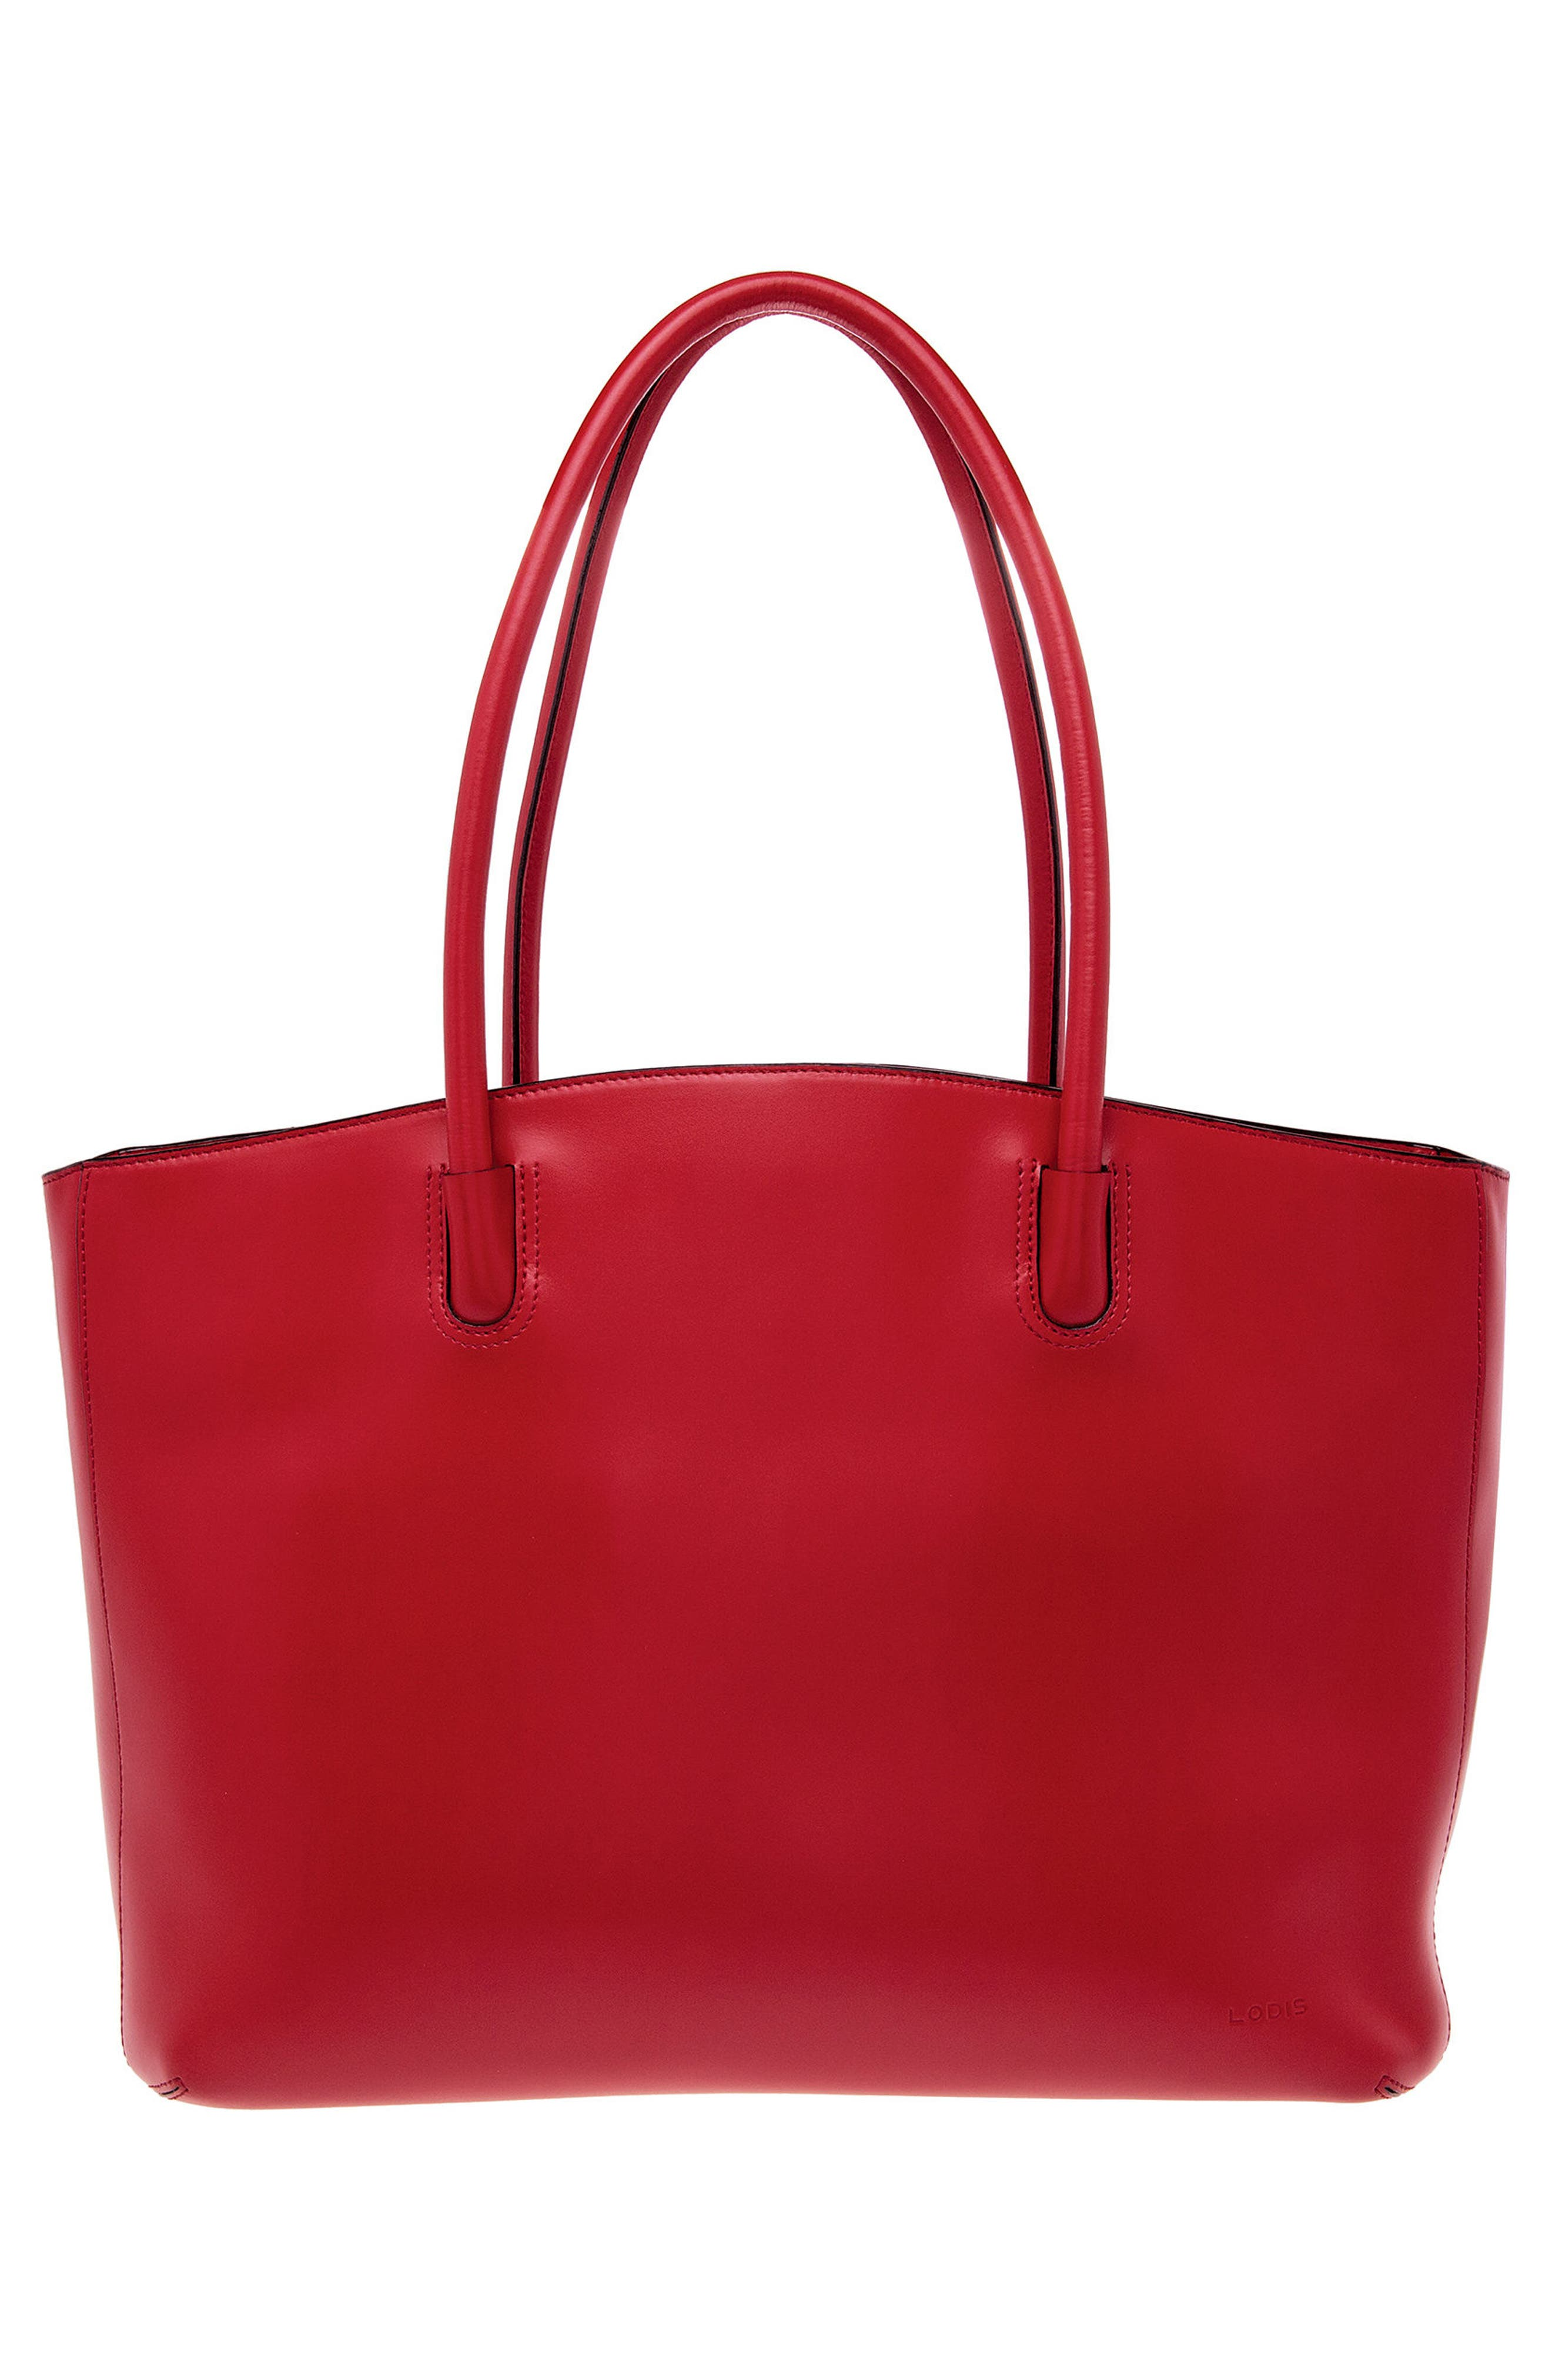 Audrey Under Lock & Key - Milano RFID Leather Tote,                             Alternate thumbnail 2, color,                             Red